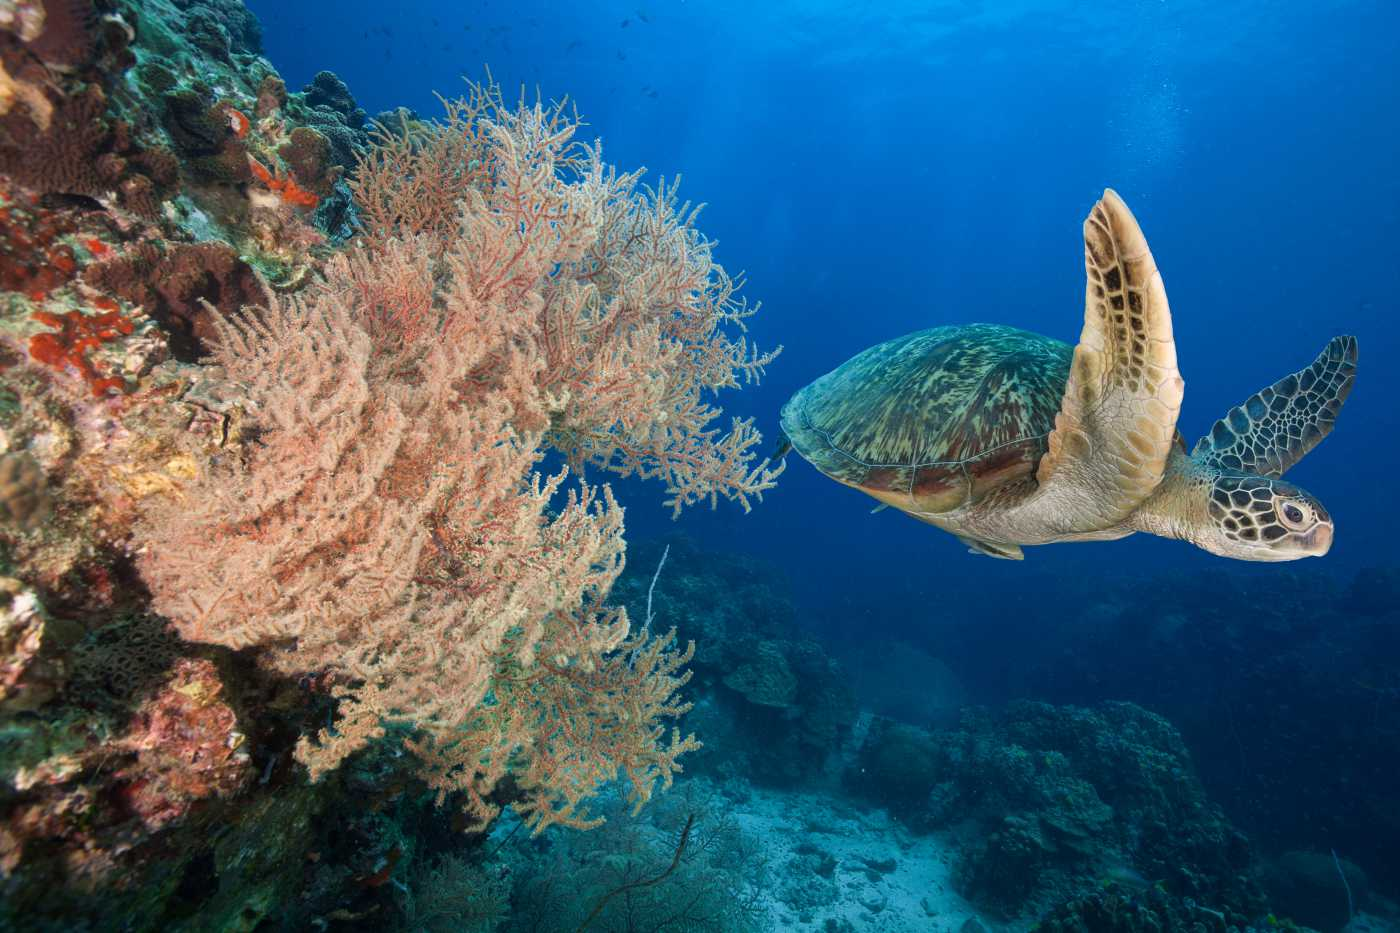 1400 Koh Tao Sea Turtle at the Reef Koh Tao shutterstock 409451317